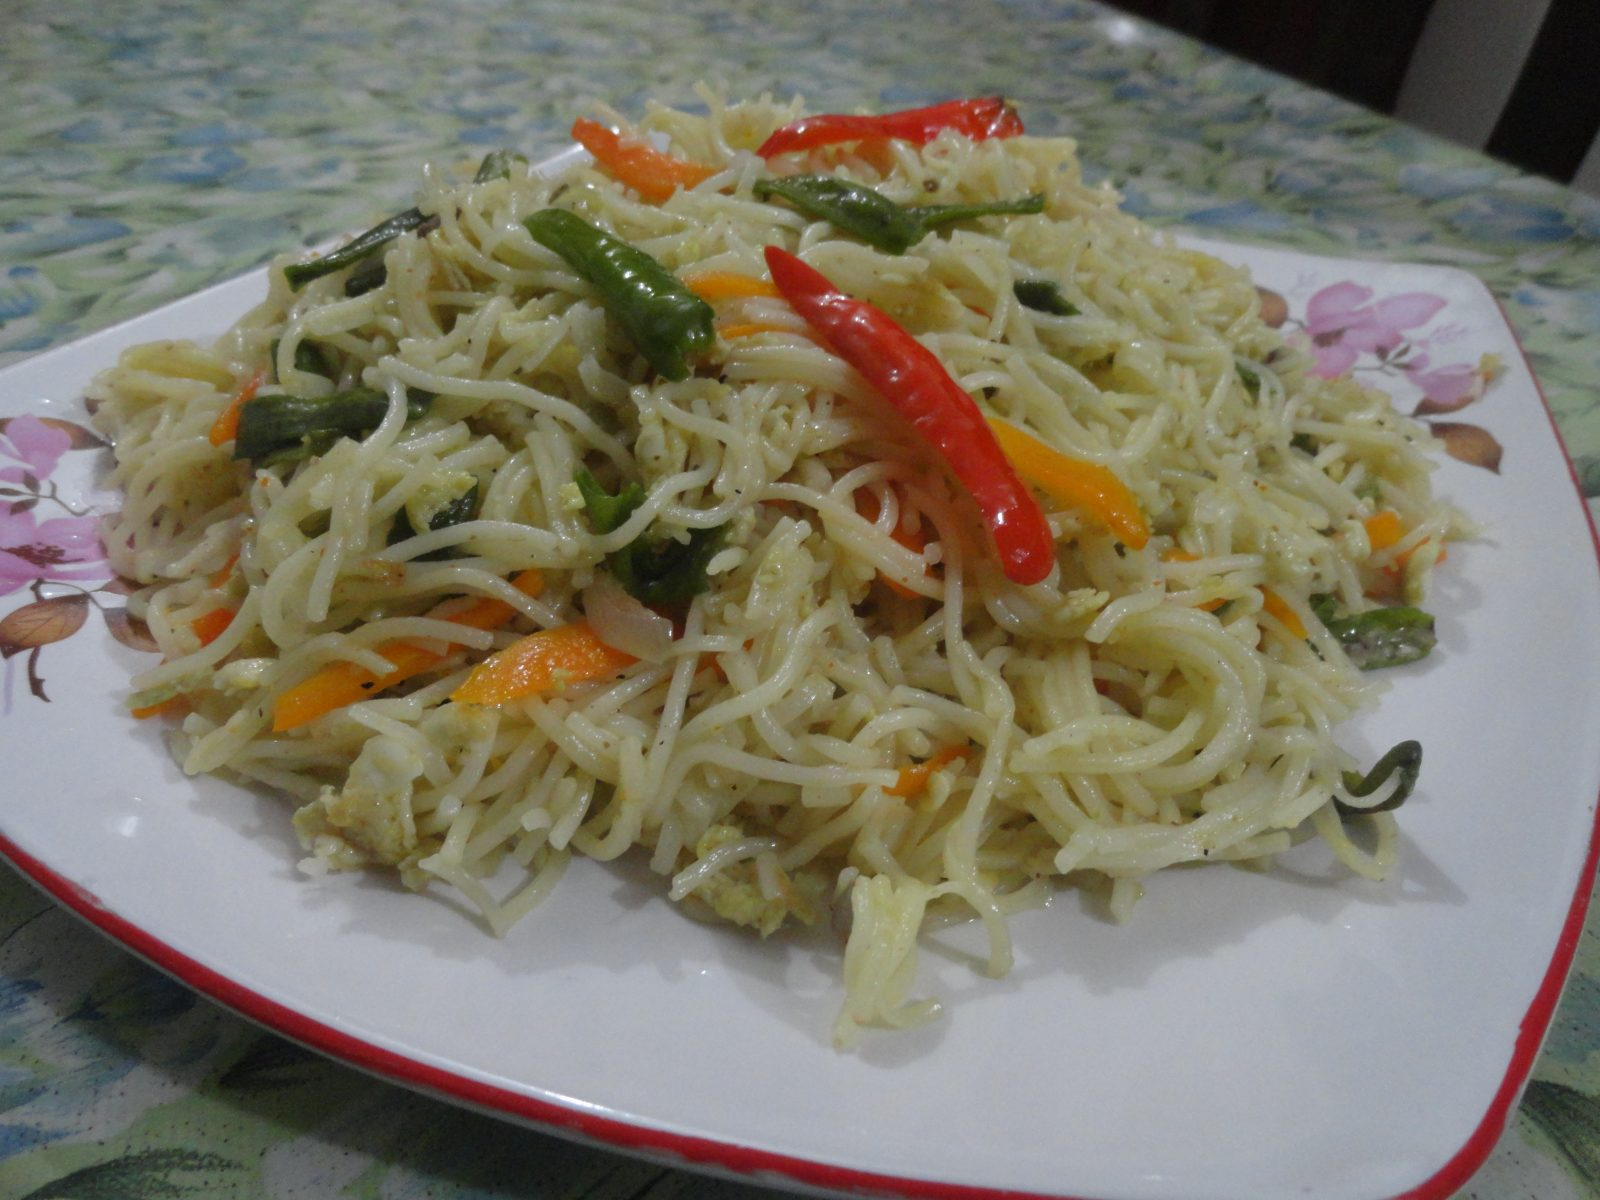 Chicken Vegetable Noodles from Mom's Dine